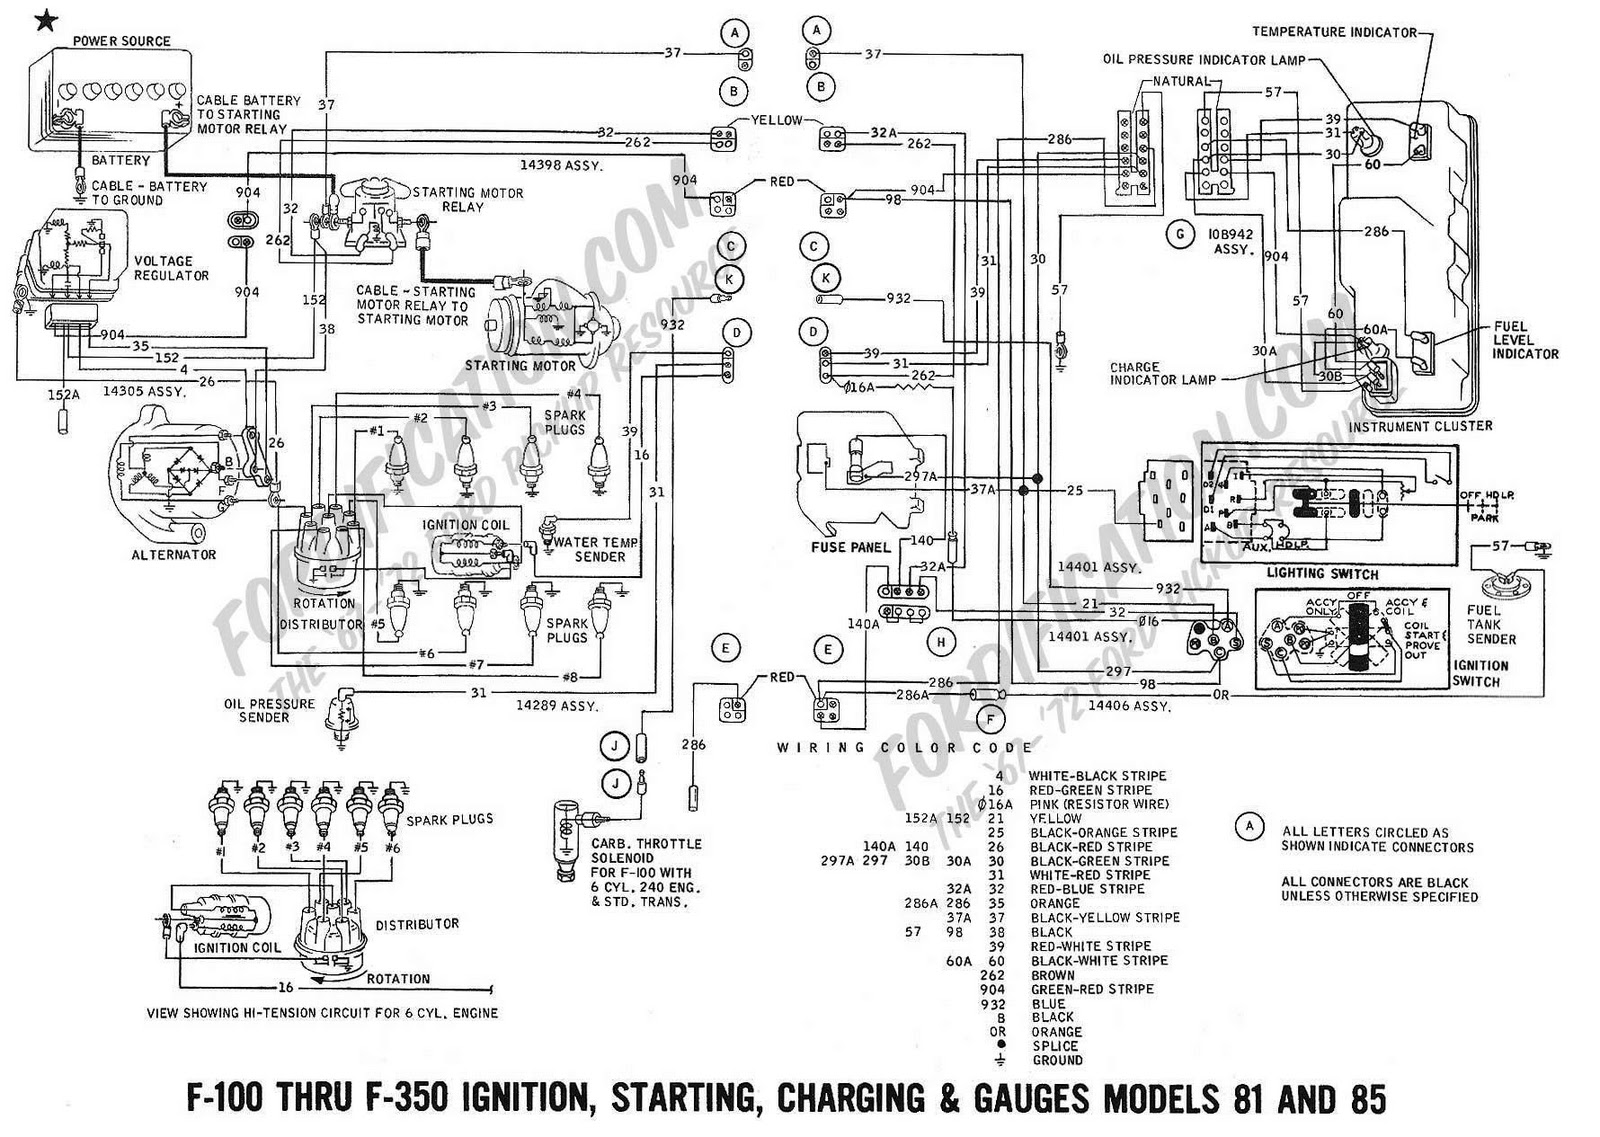 ford f wiring diagram 1969 ford f100 f350 ignition starting charging and gauges 1969 ford f100 f350 ignition starting charging